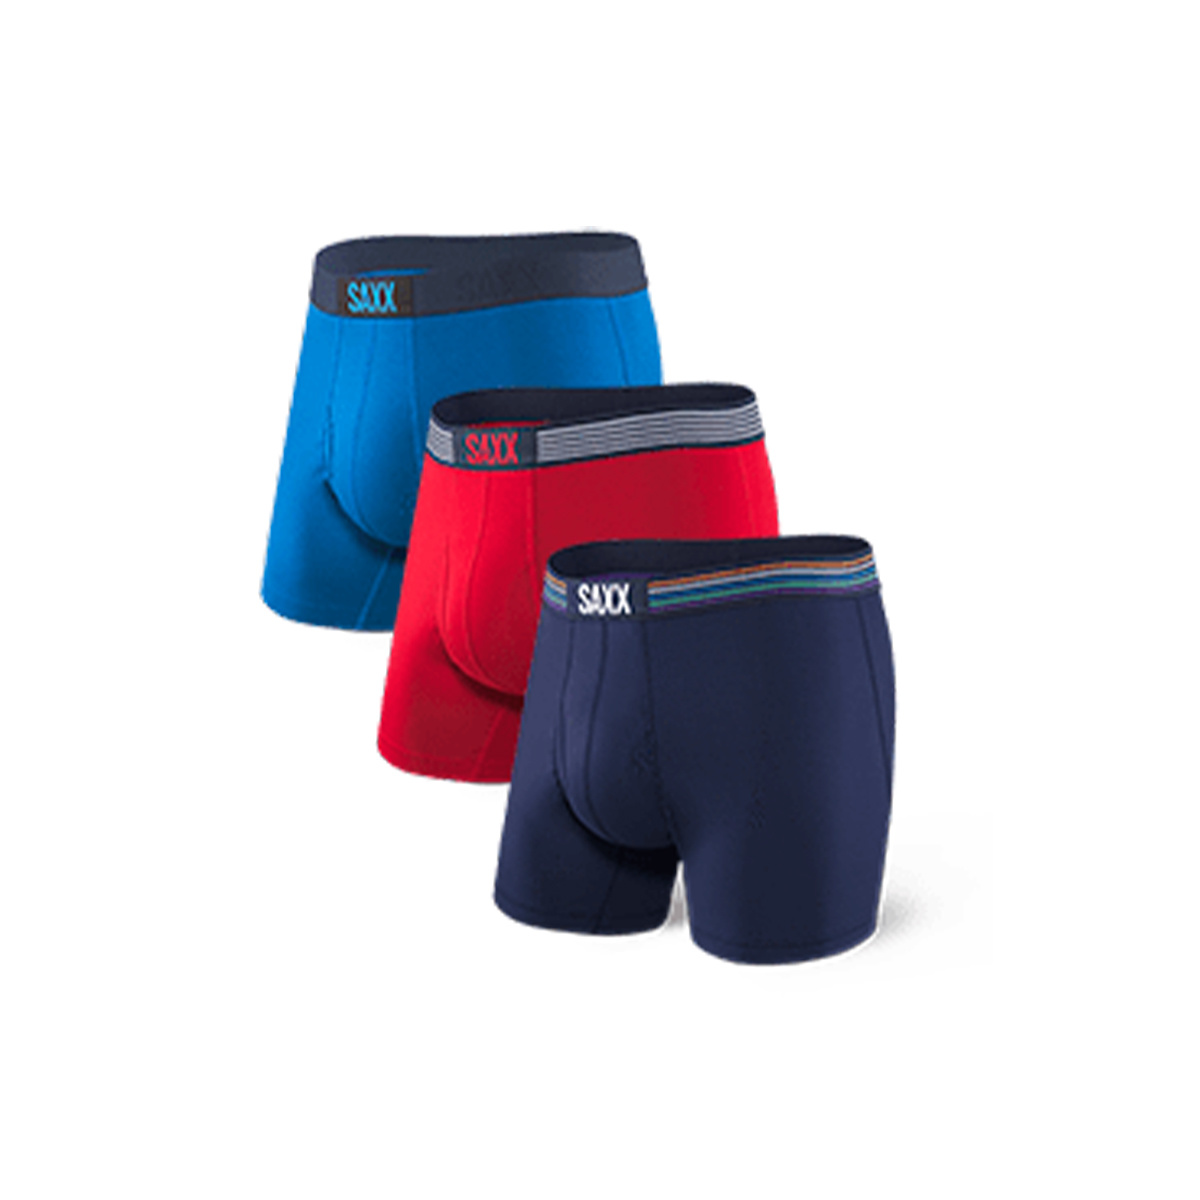 Saxx Underwear Co. Ultra Boxer 3 Pack